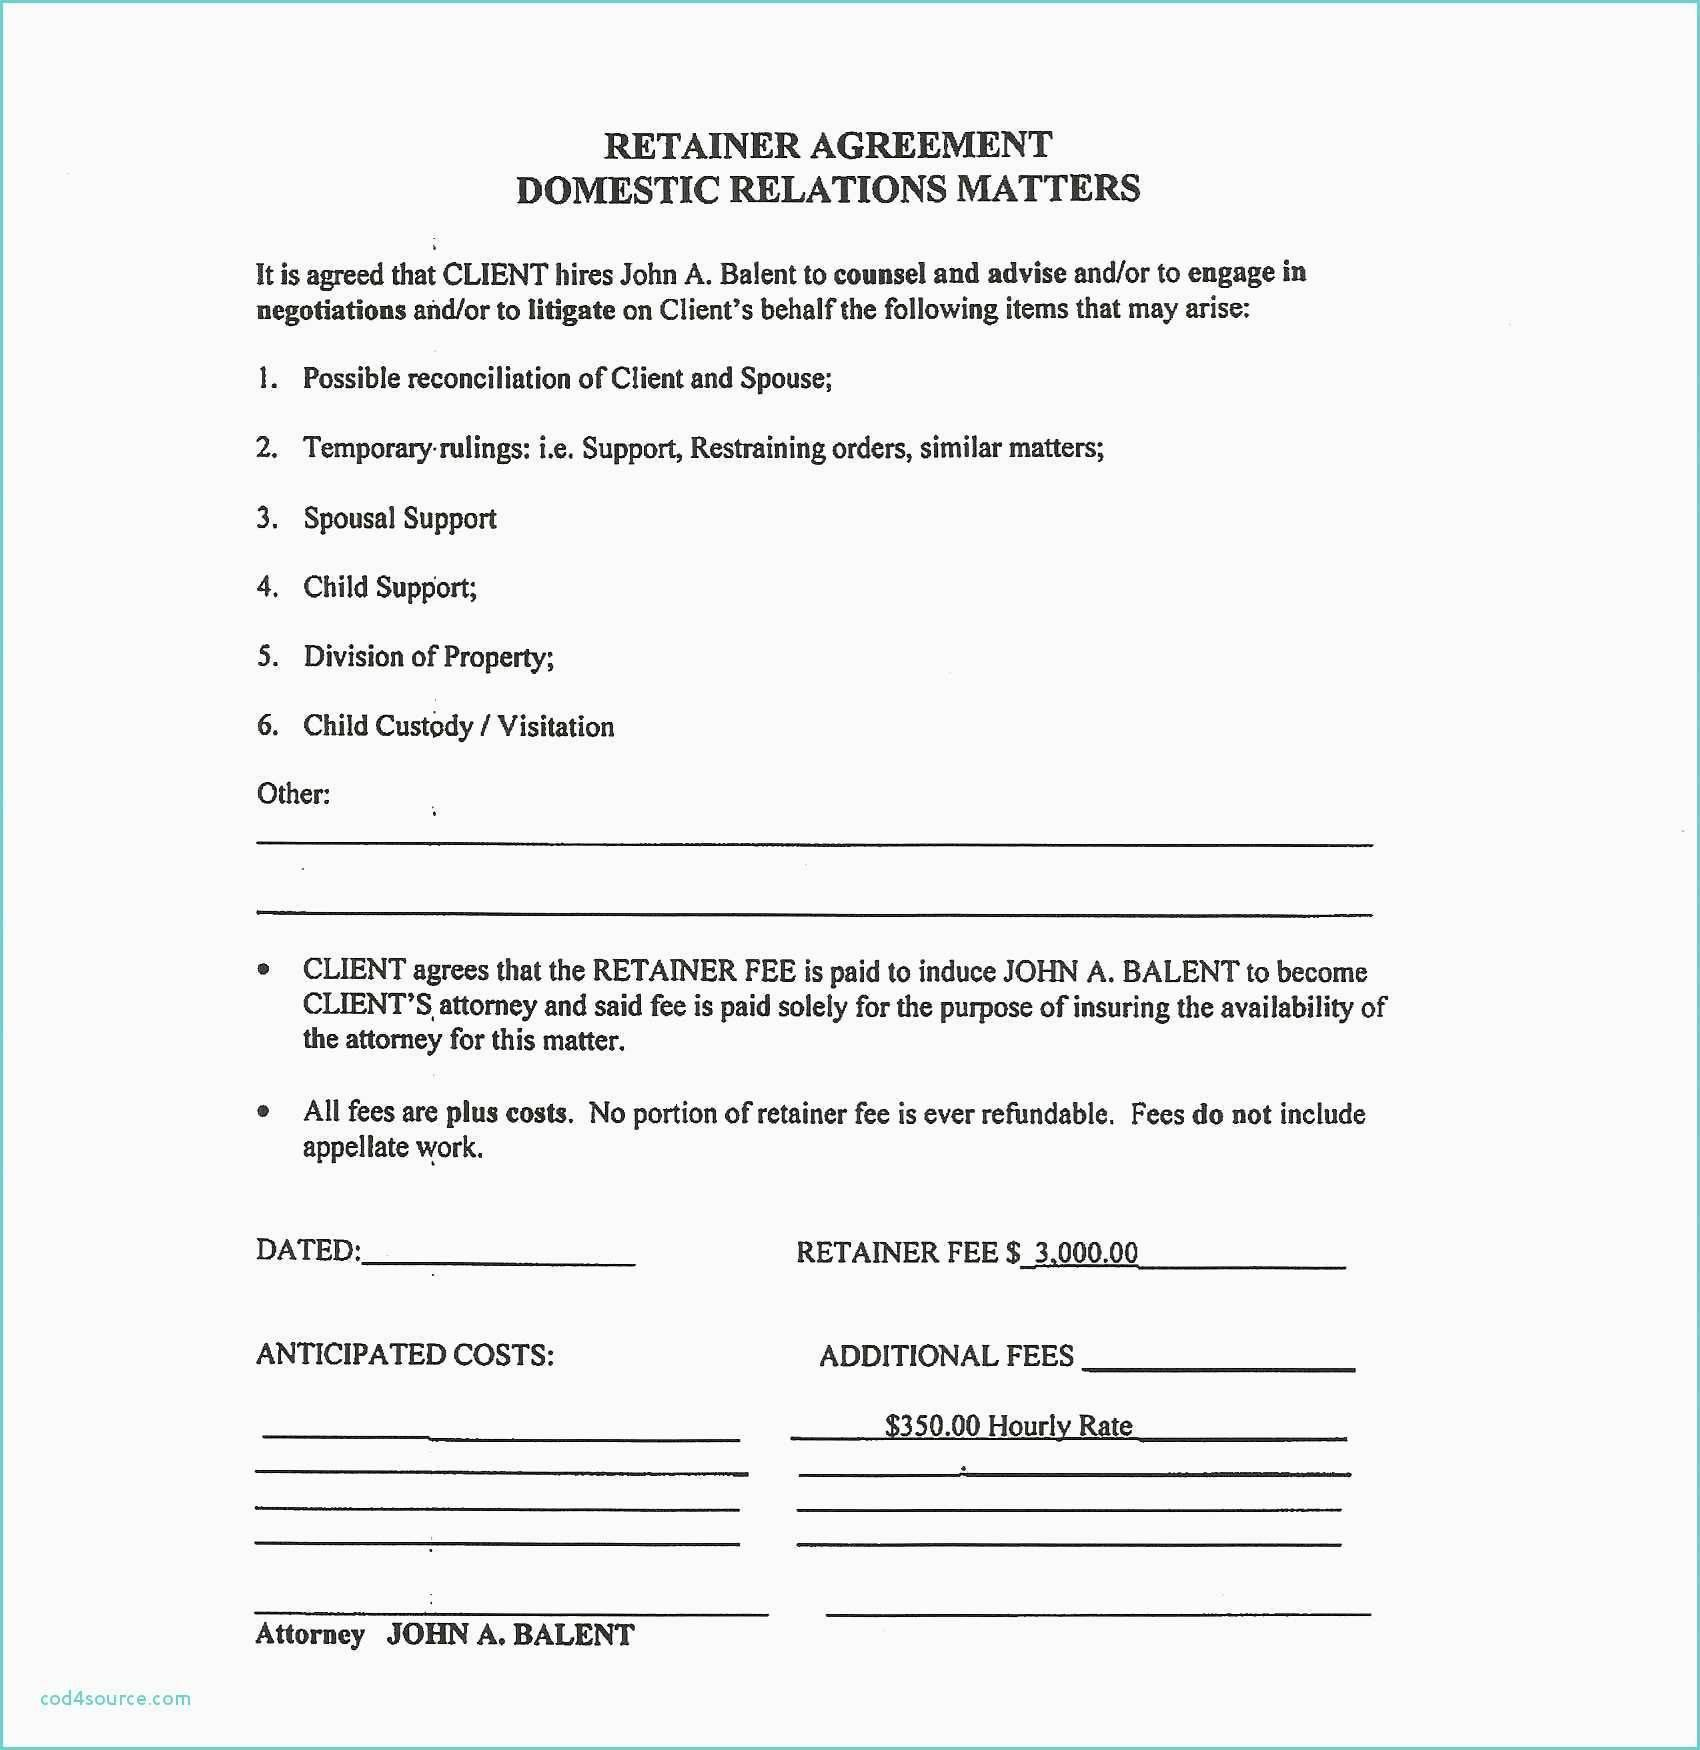 Legal Services Retainer Agreement Form